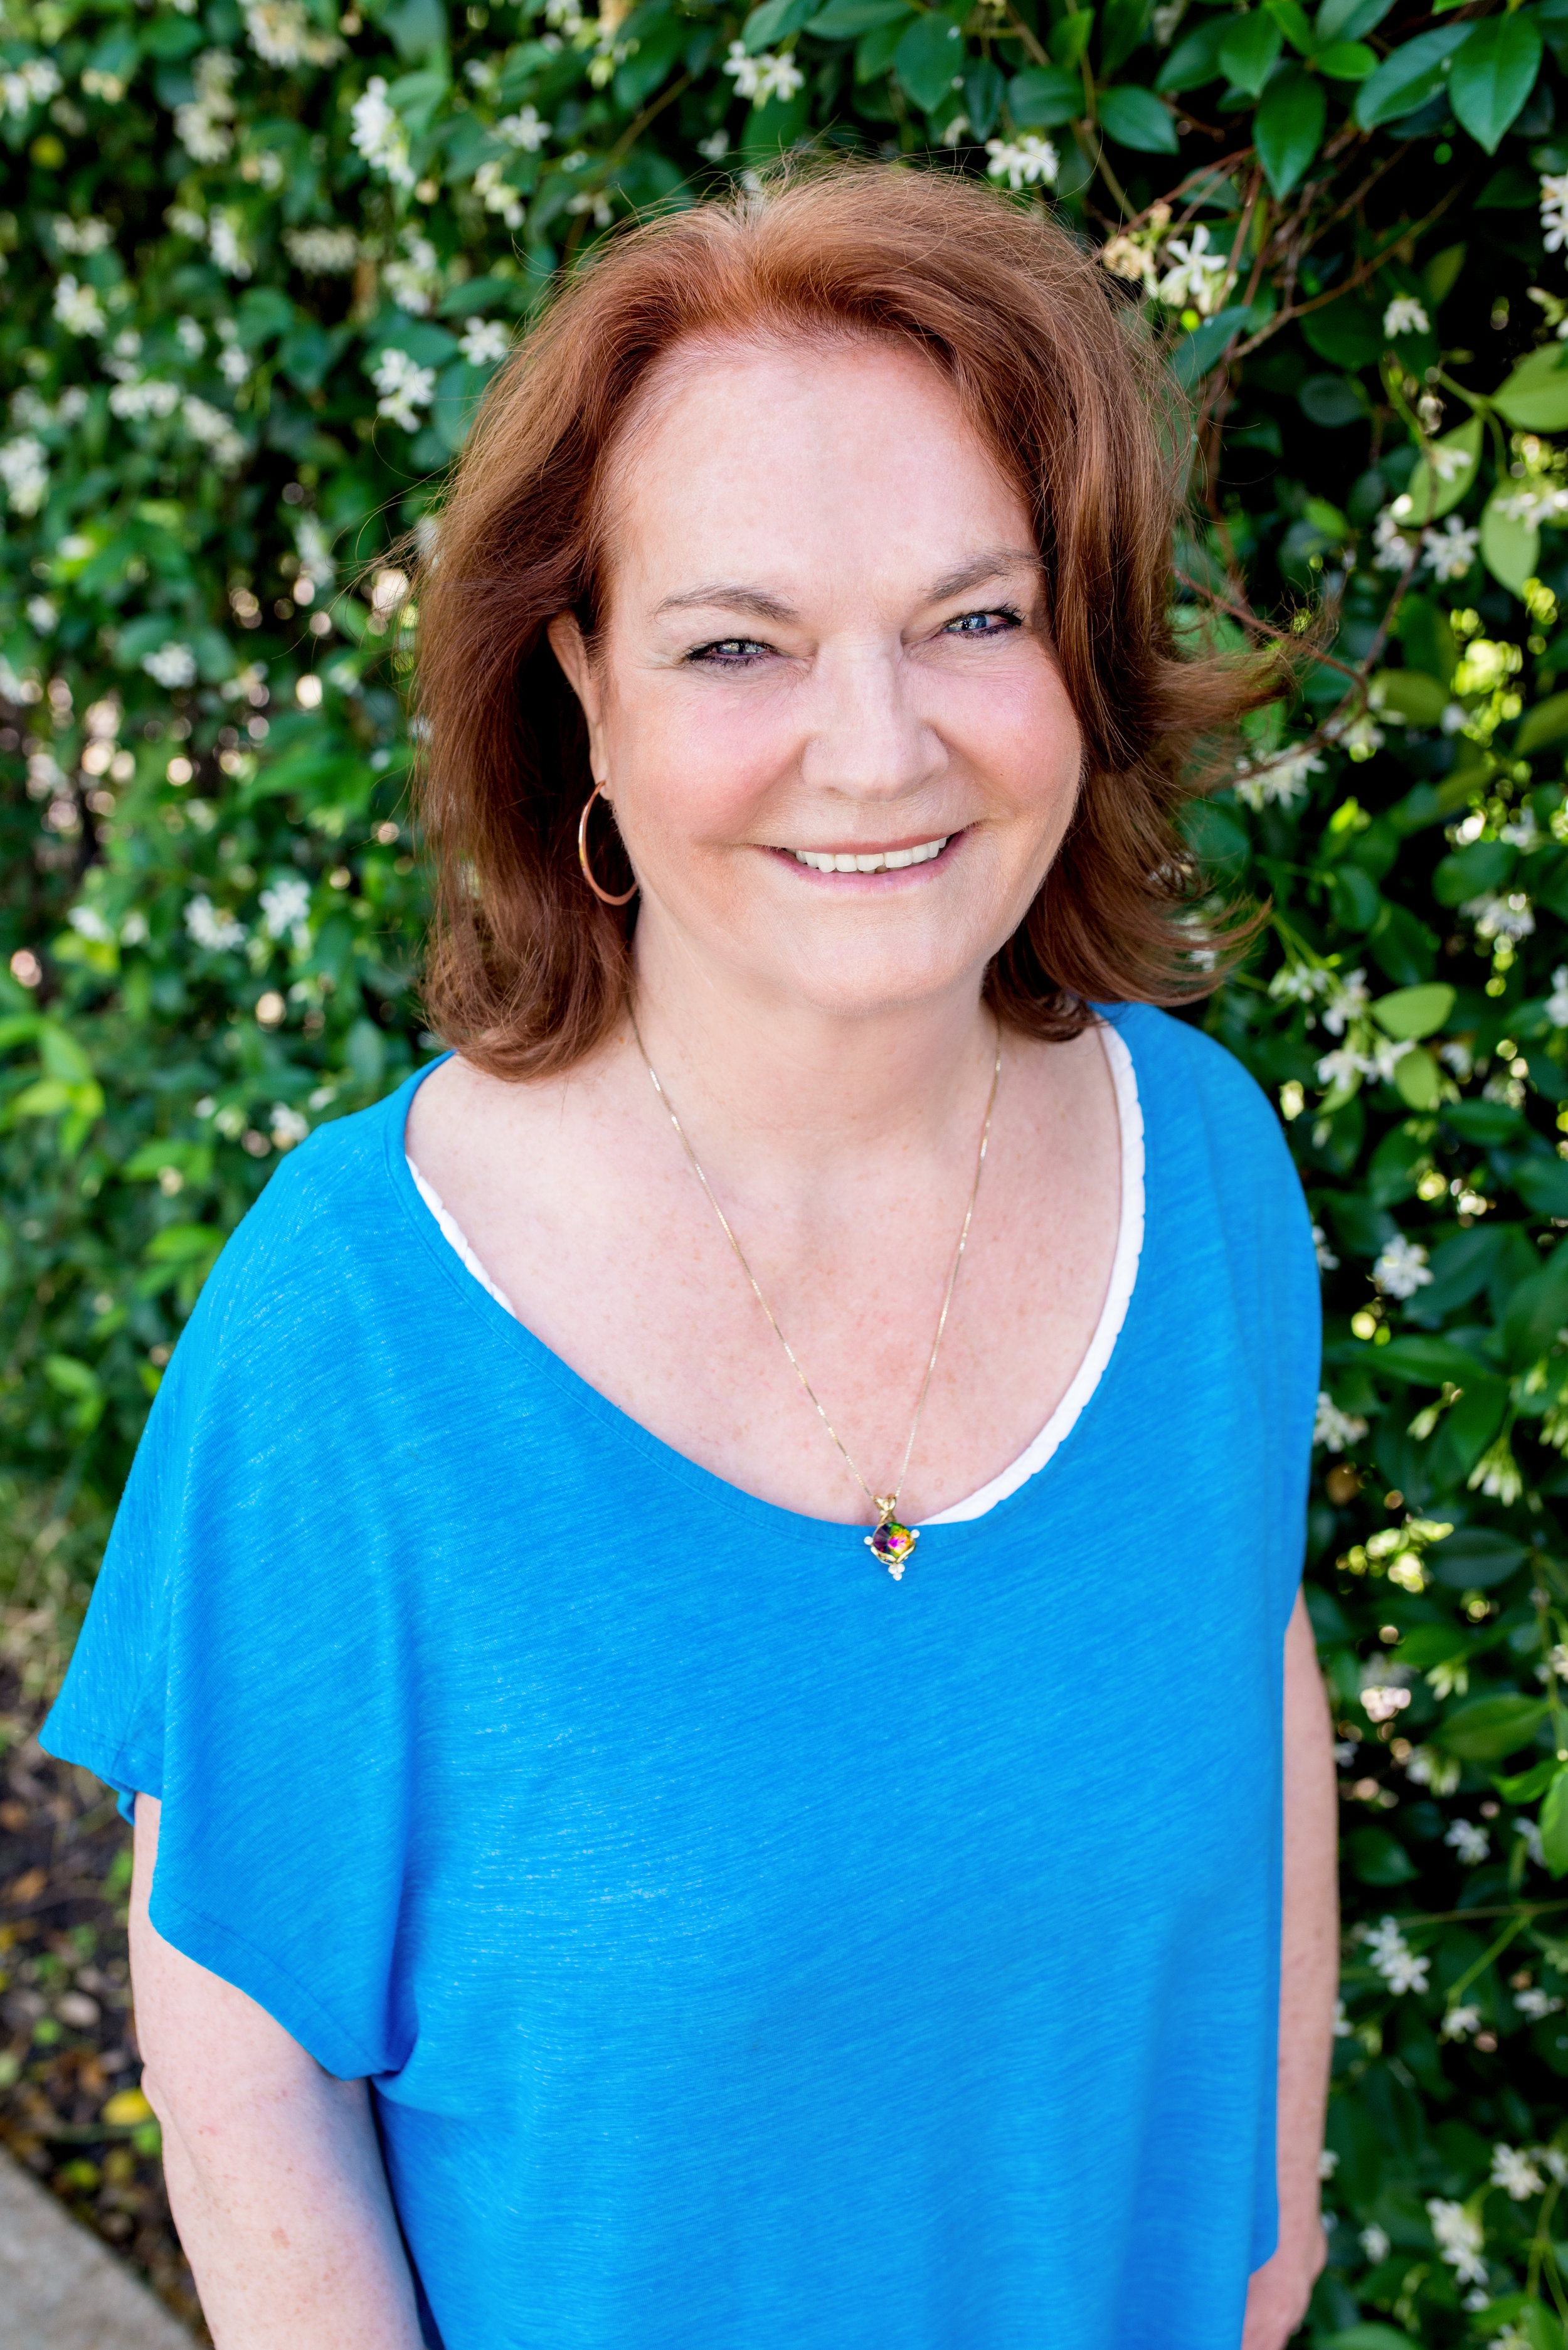 About Judy - Judy Jellison is a Spiritual guide using the light frequency of Reiki, Sound Therapy, Global shamanic practice, Chakra and Emotional Clearing and Balancing and more.... to bring you to a new dimension of energy — of yourself and of the world.